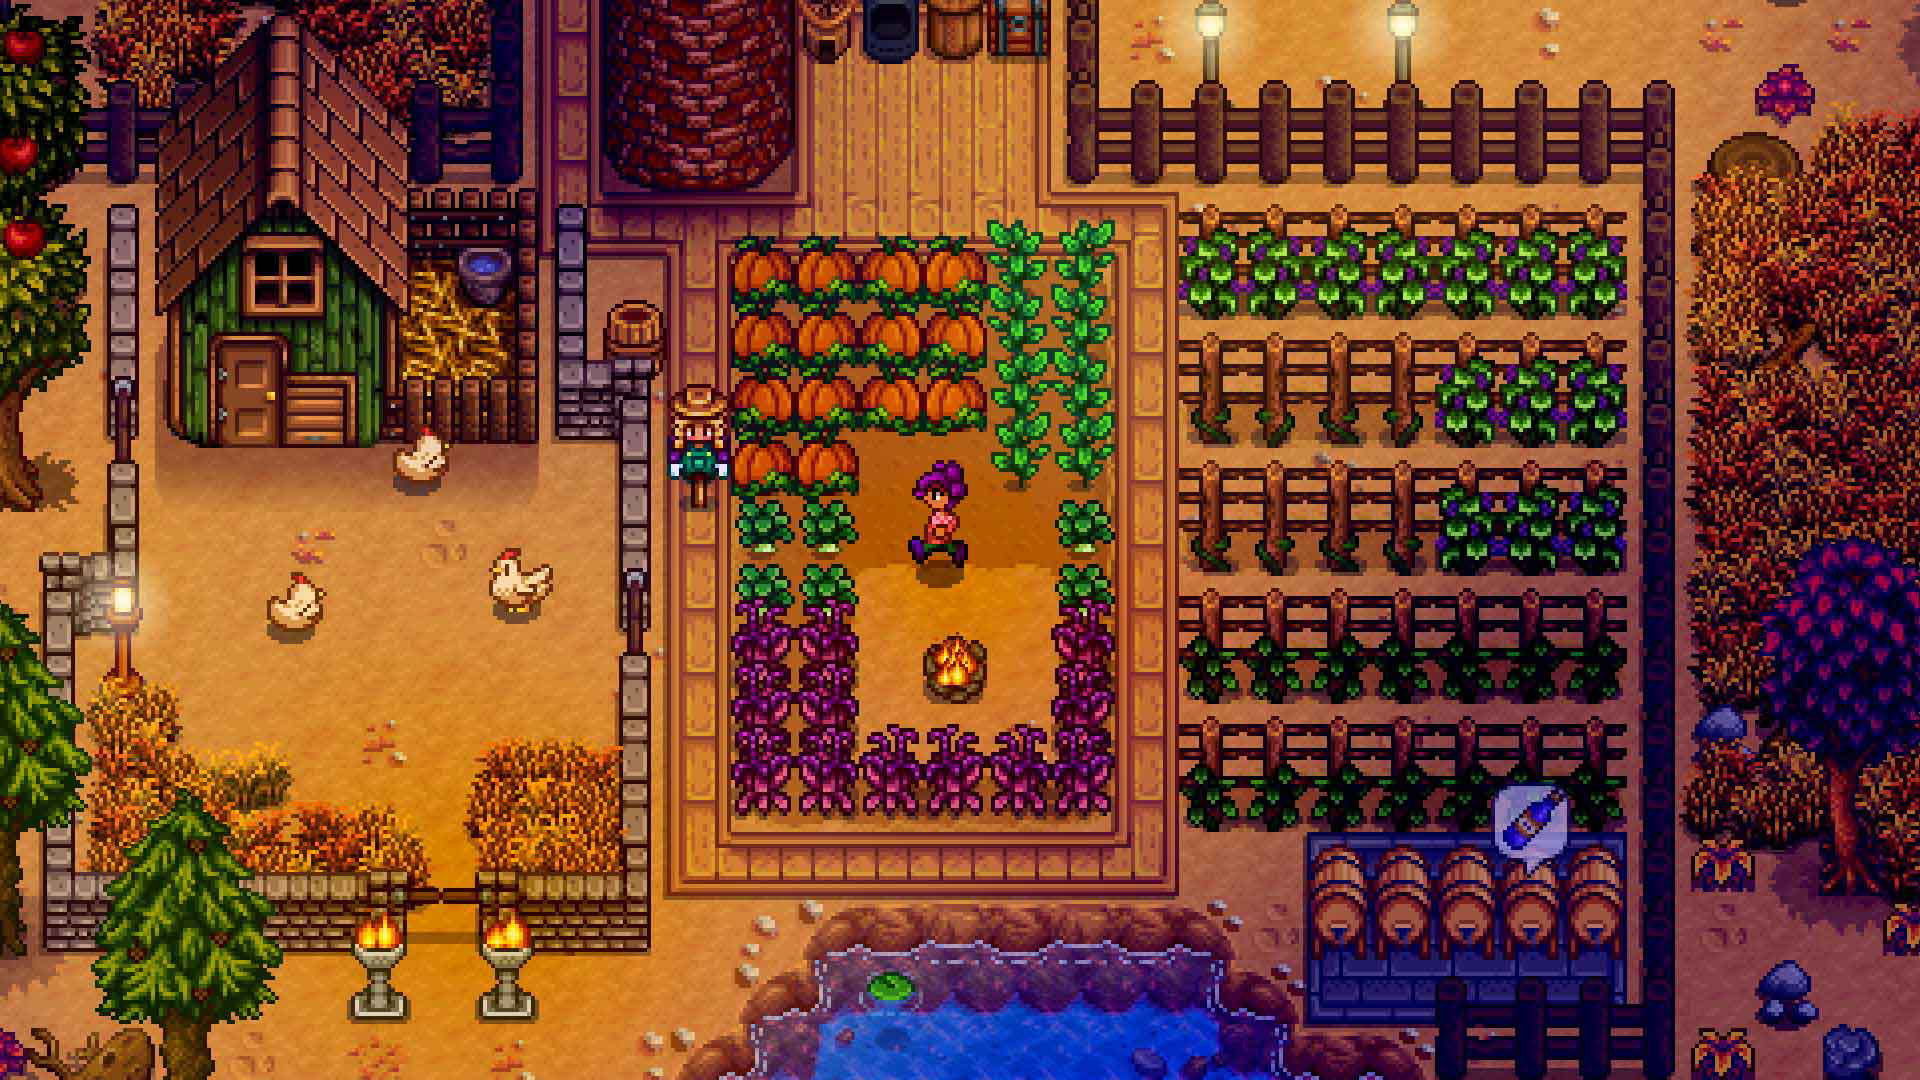 See Stardew Valley in Action